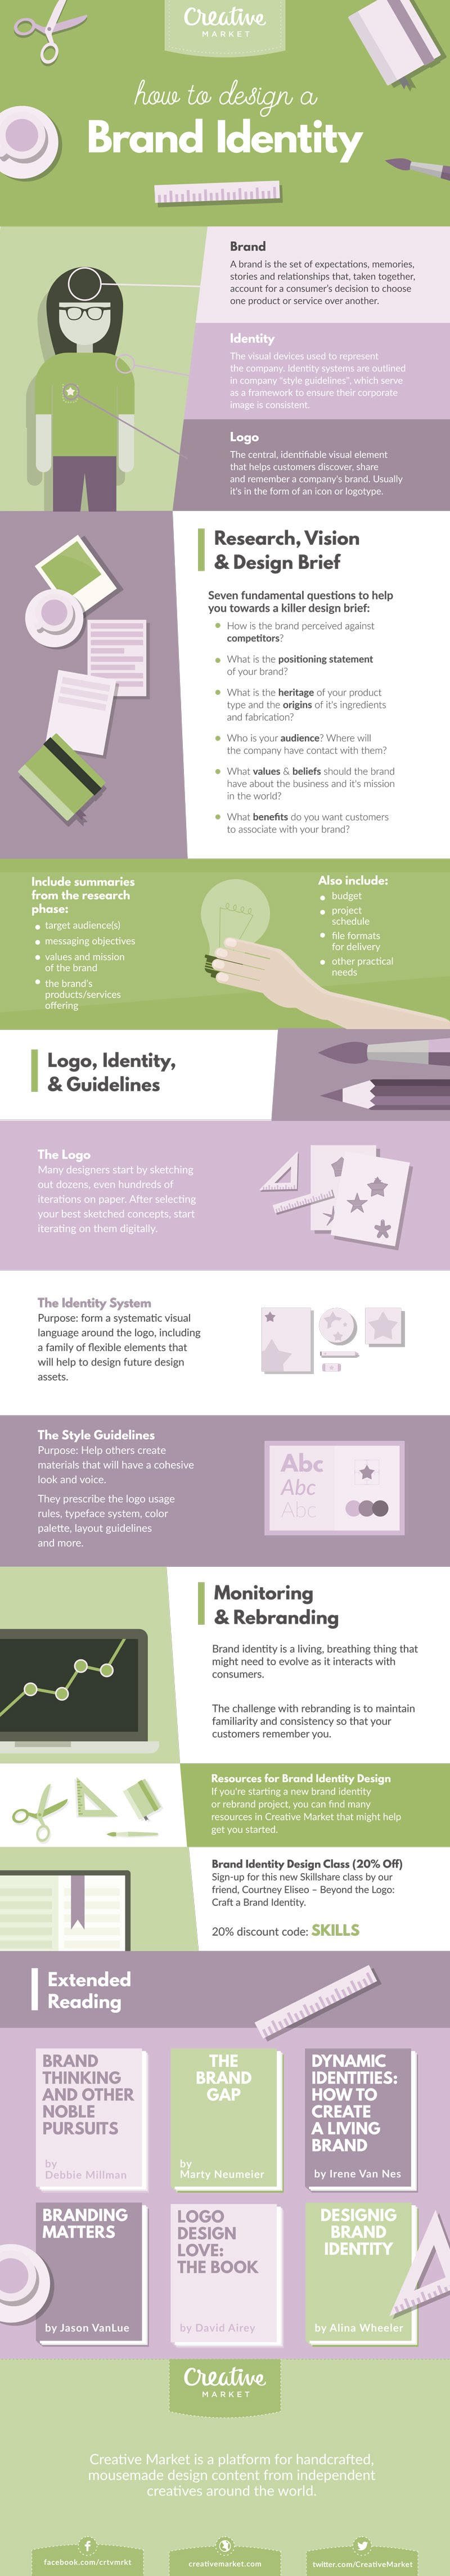 How to Design a Brand Identity - #infographic